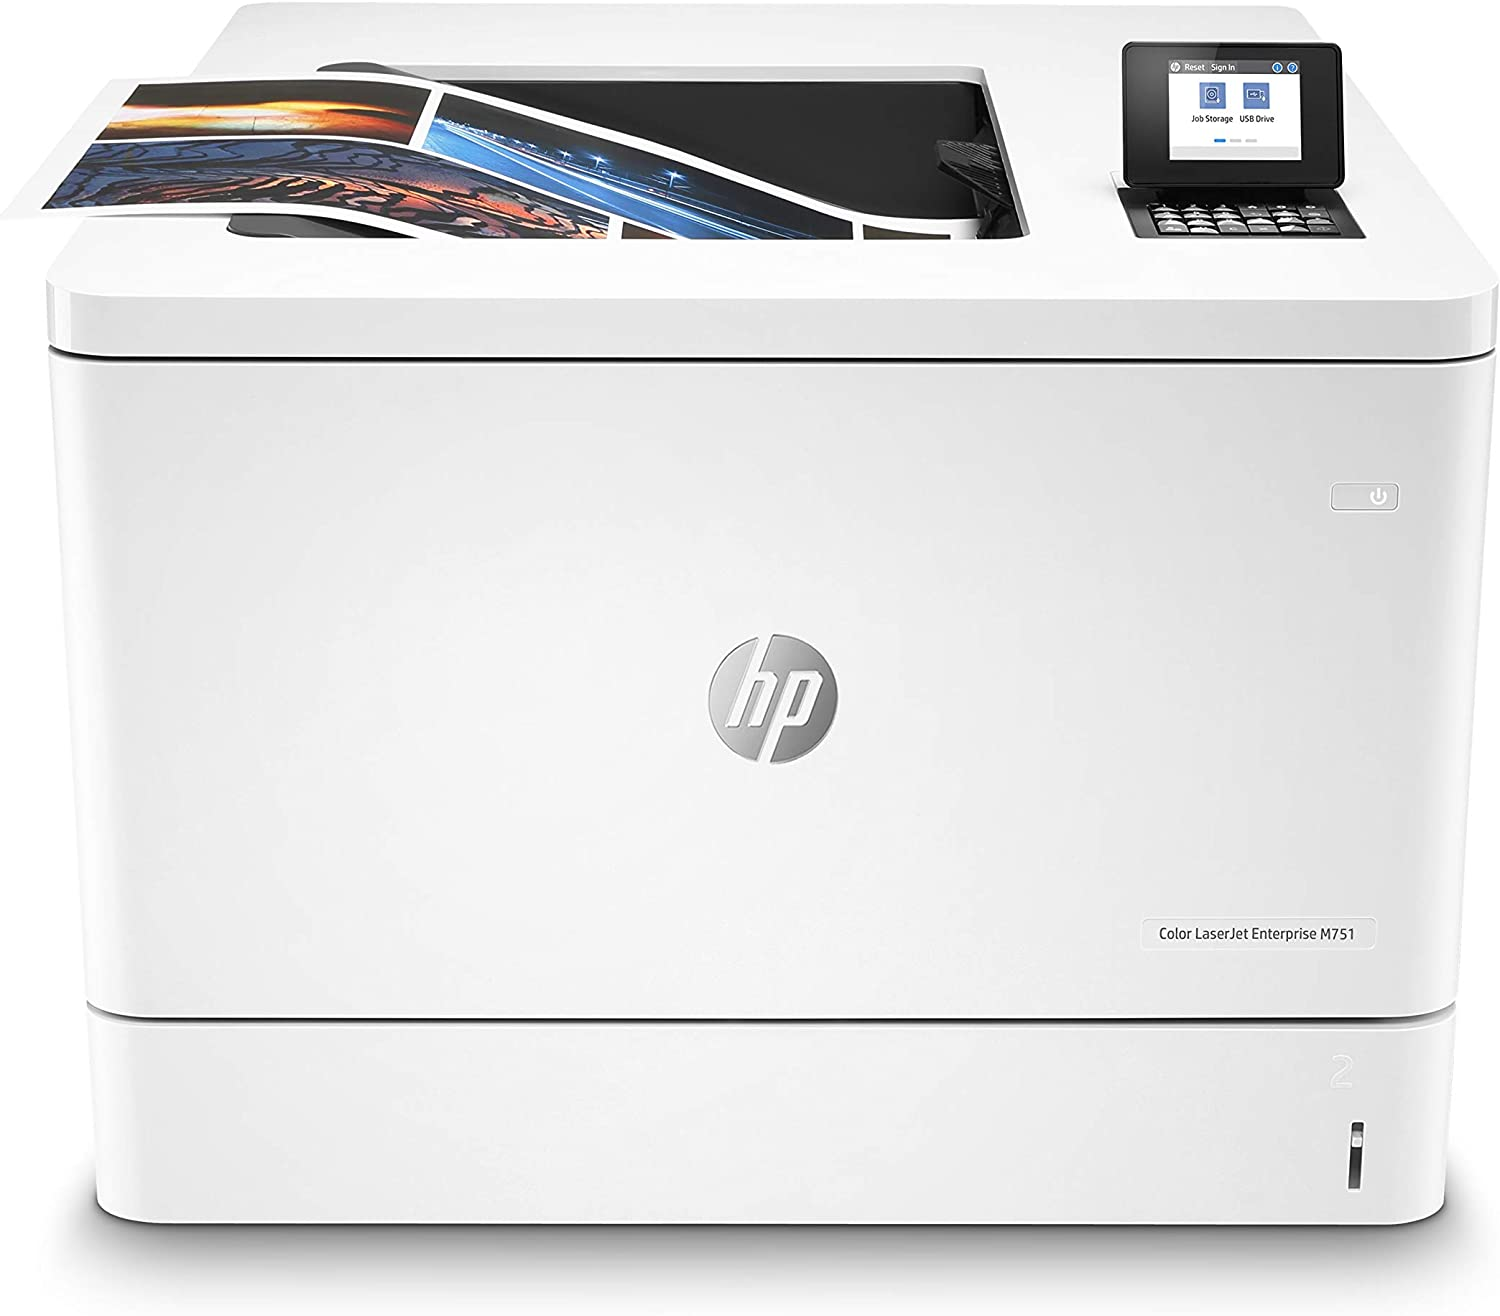 HP Color LaserJet Enterprise M751dn Printer with One-Year, Next-Business Day, Onsite Warranty (T3U44A), White, One Size